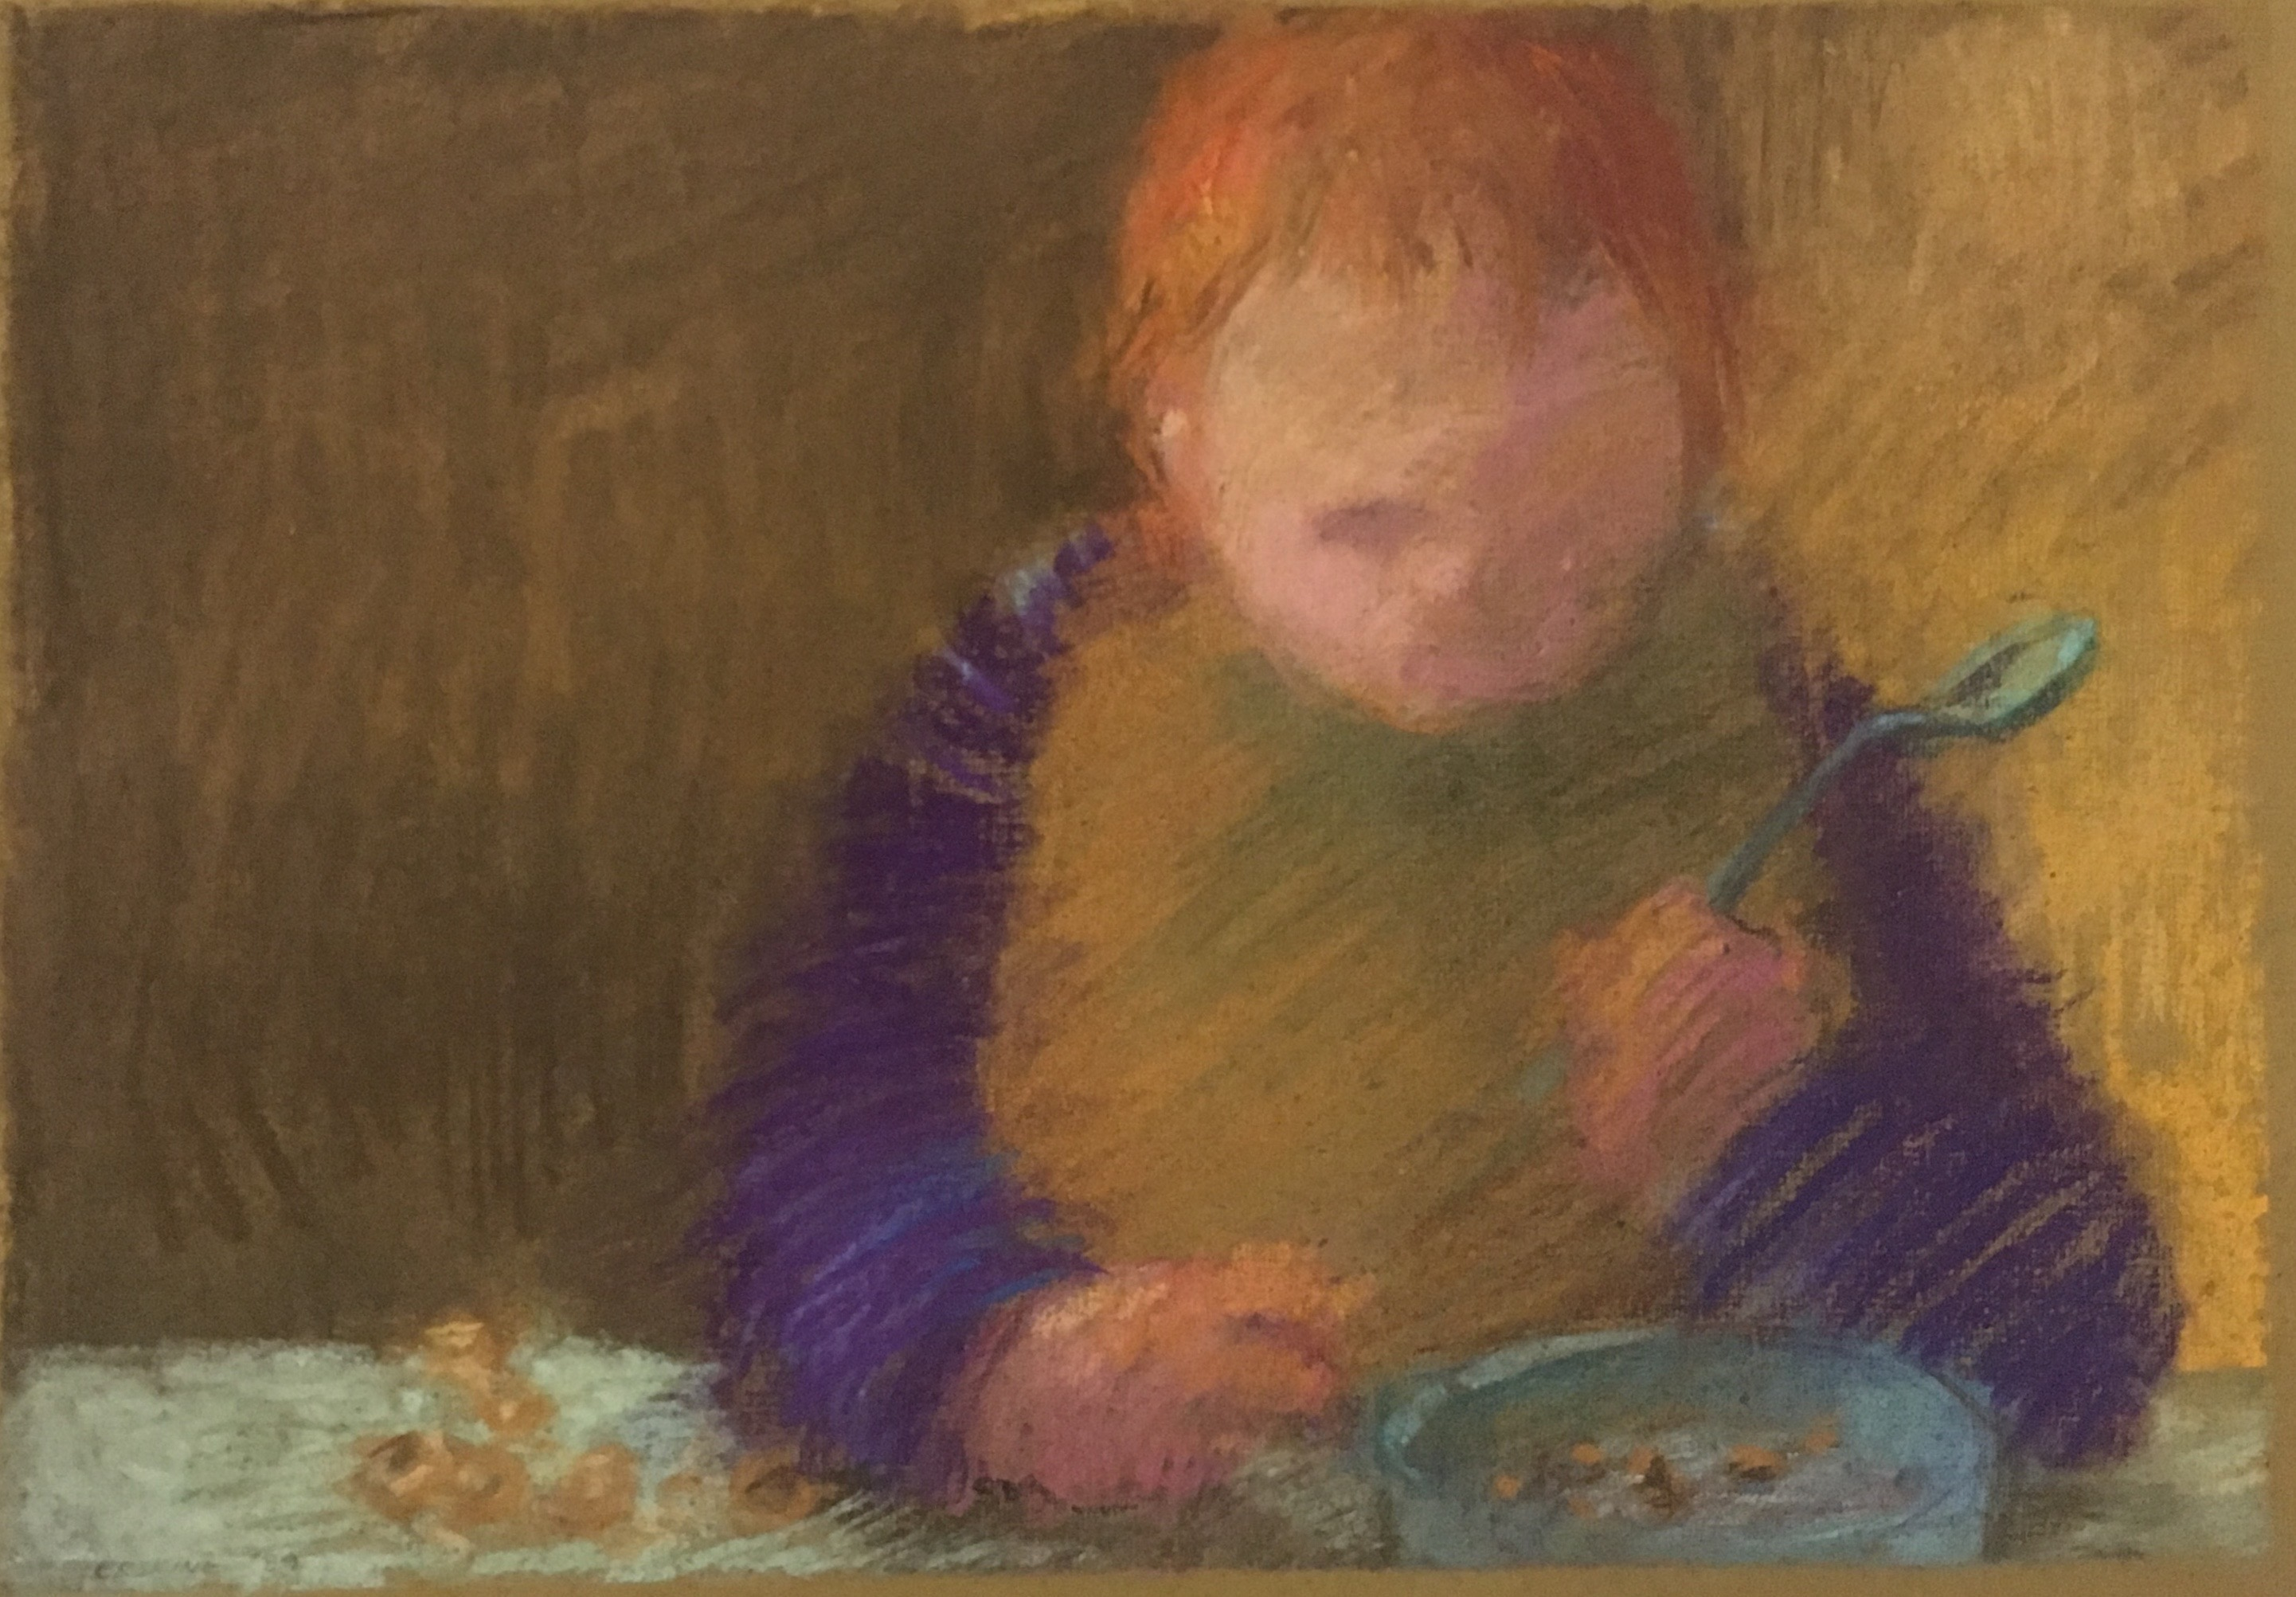 pastel drawing of child eating cheerios